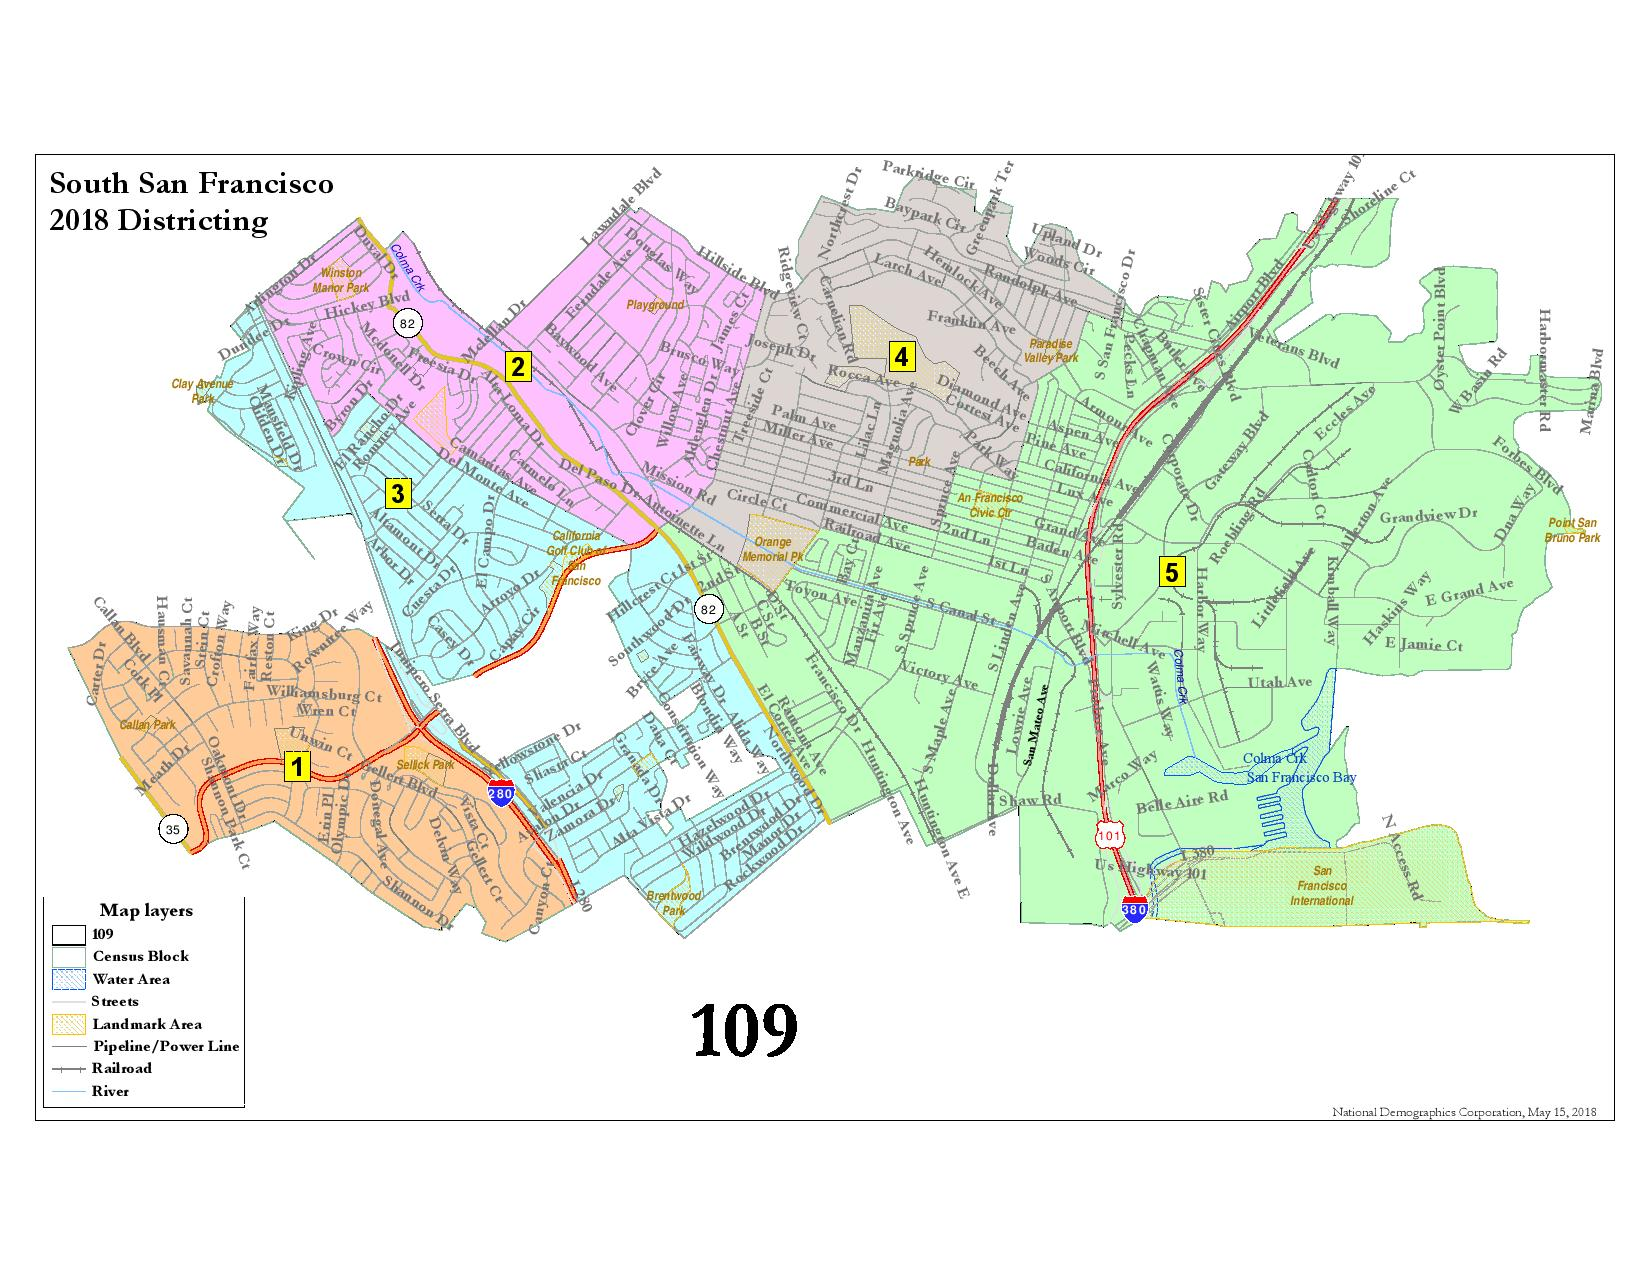 South San Francisco Election District Map Approved By City Council